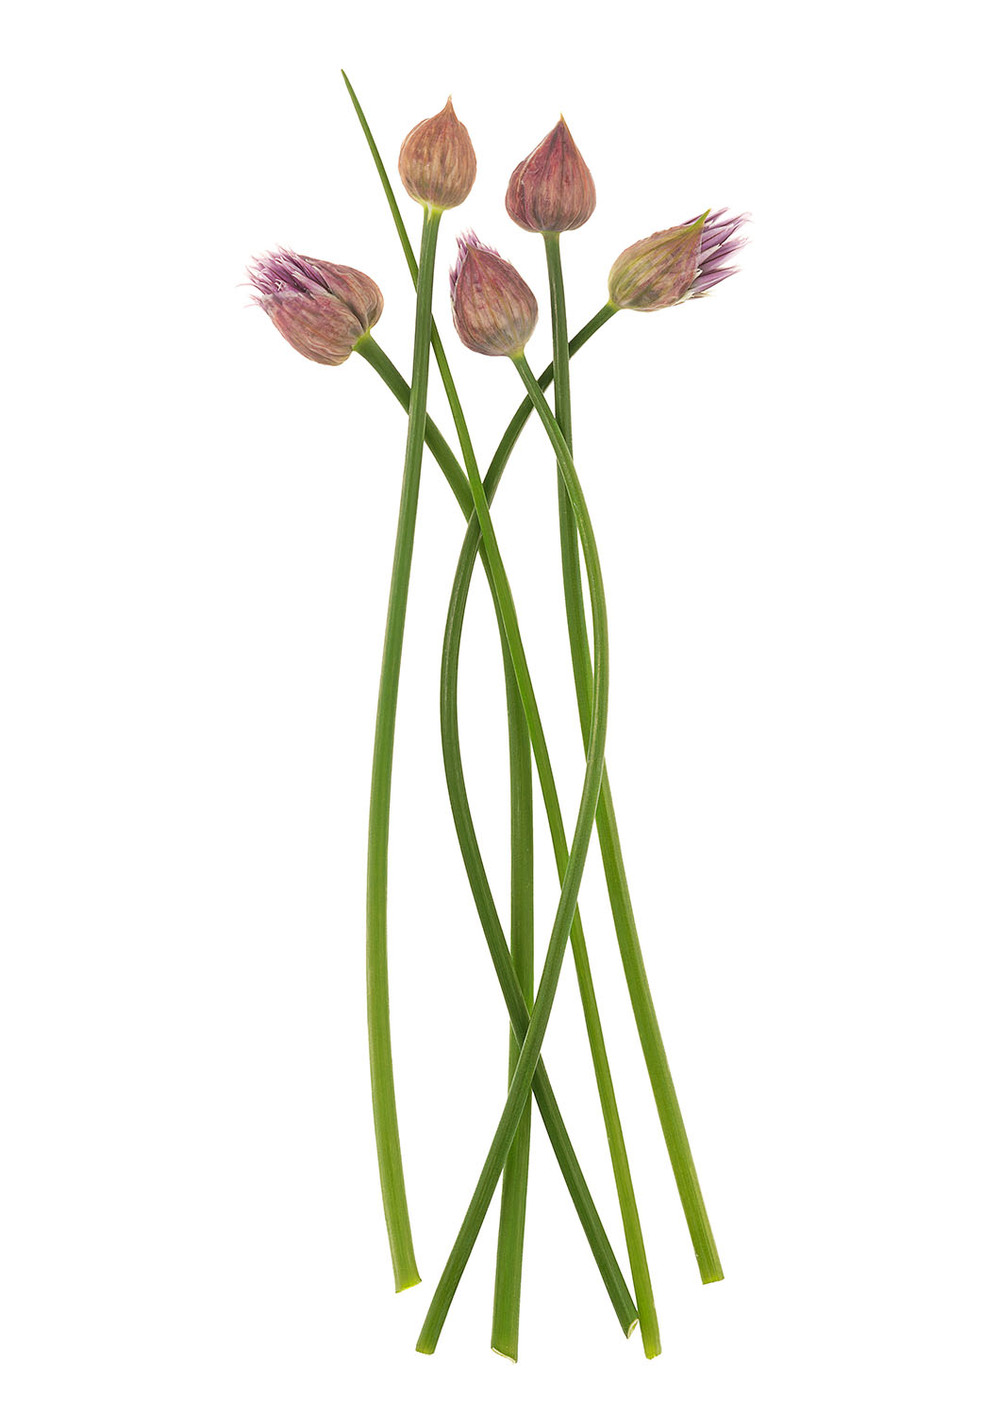 Five Chive Flowers